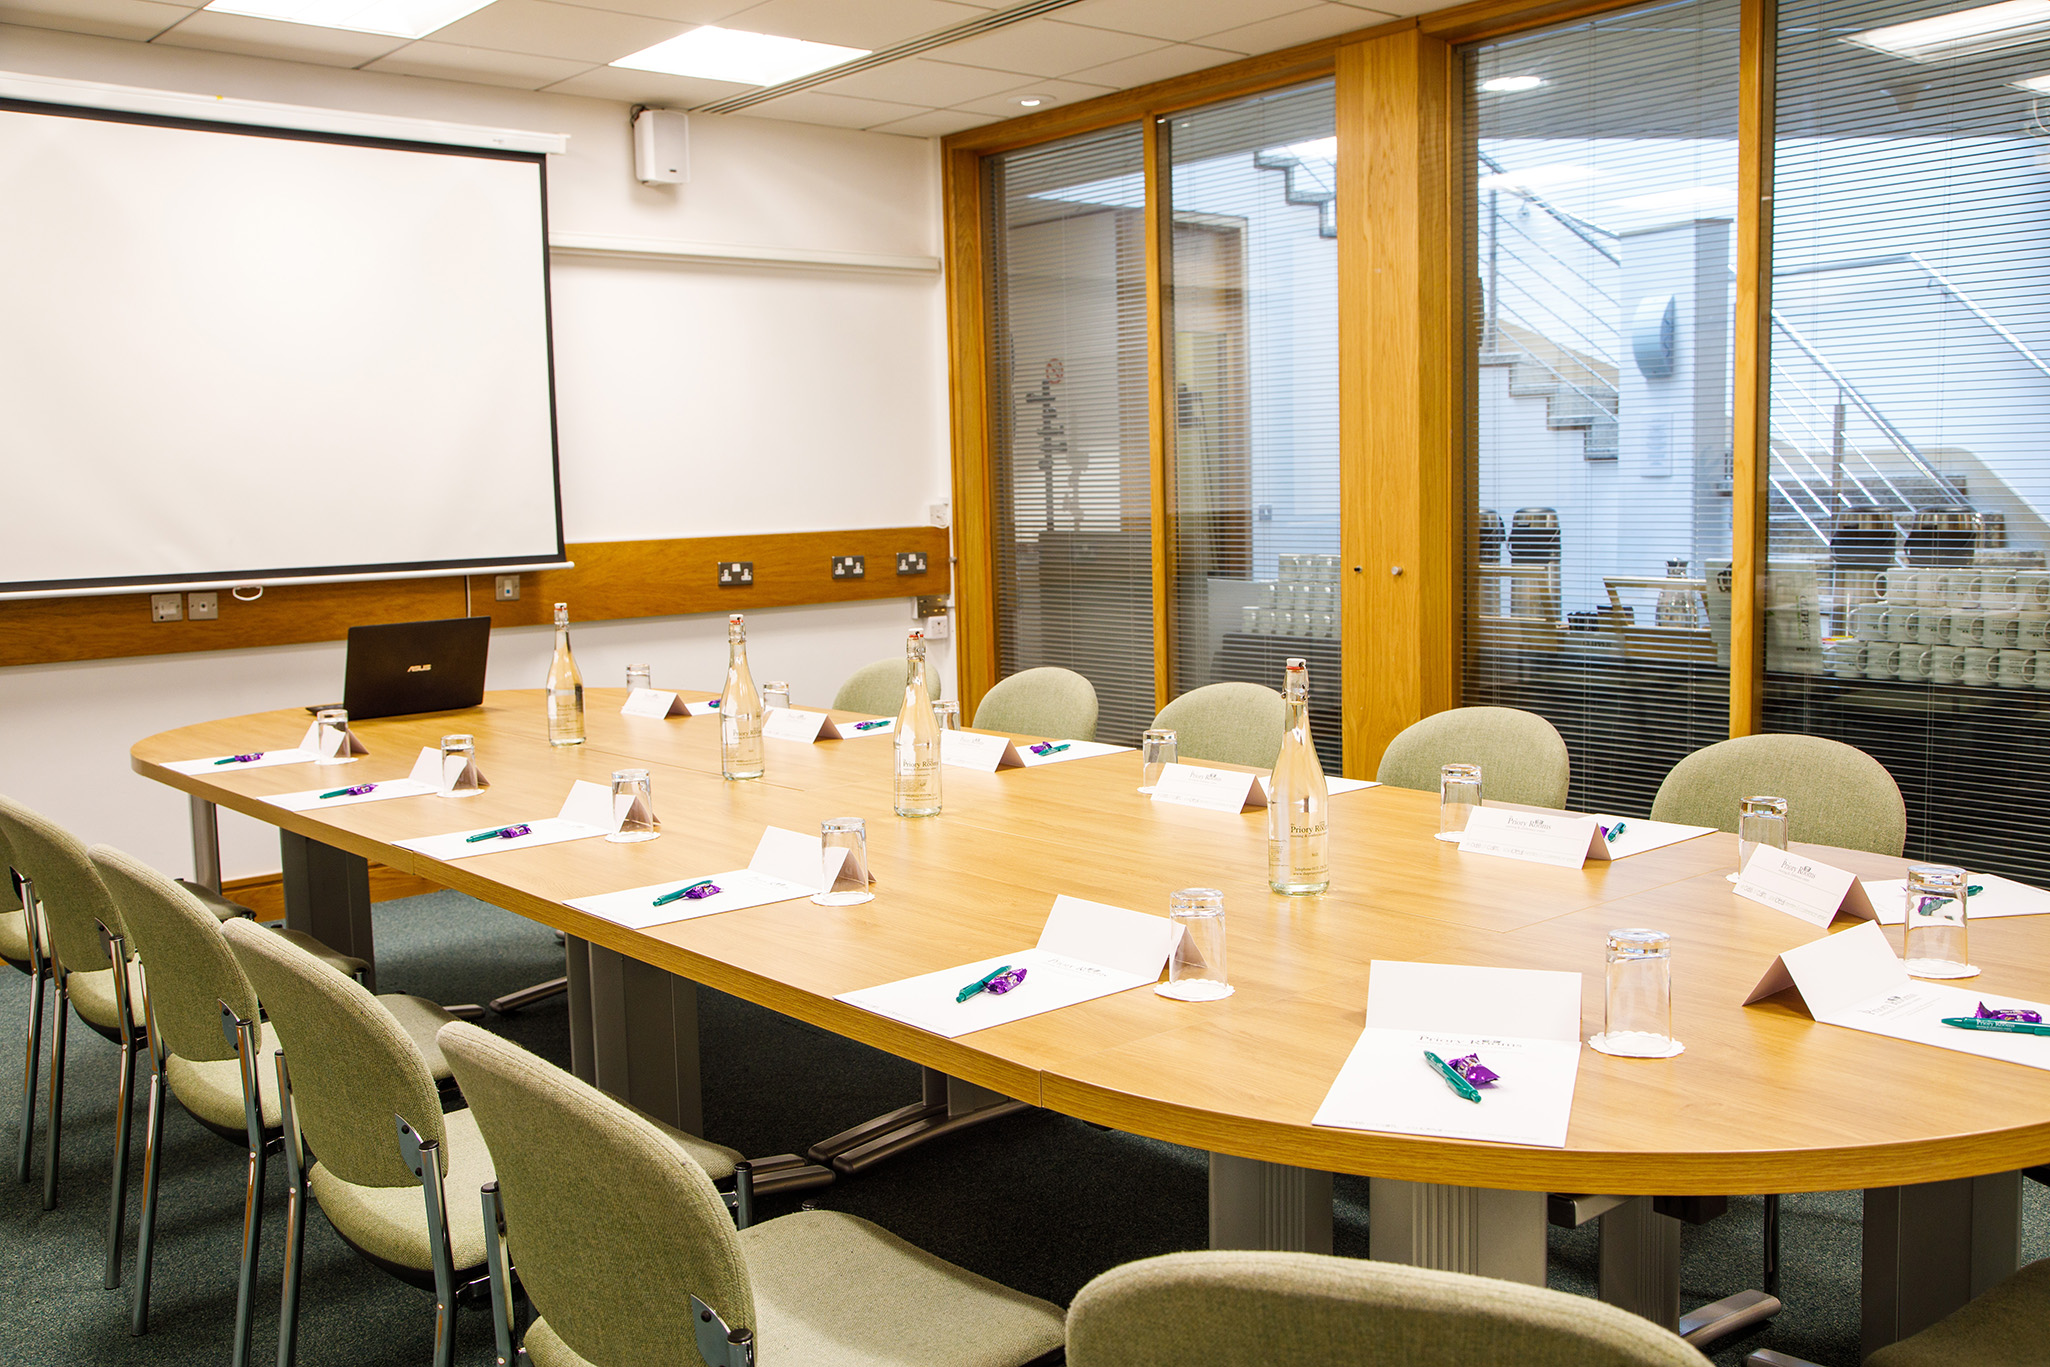 The Priory Rooms Meeting And Conference Centre Birmingham